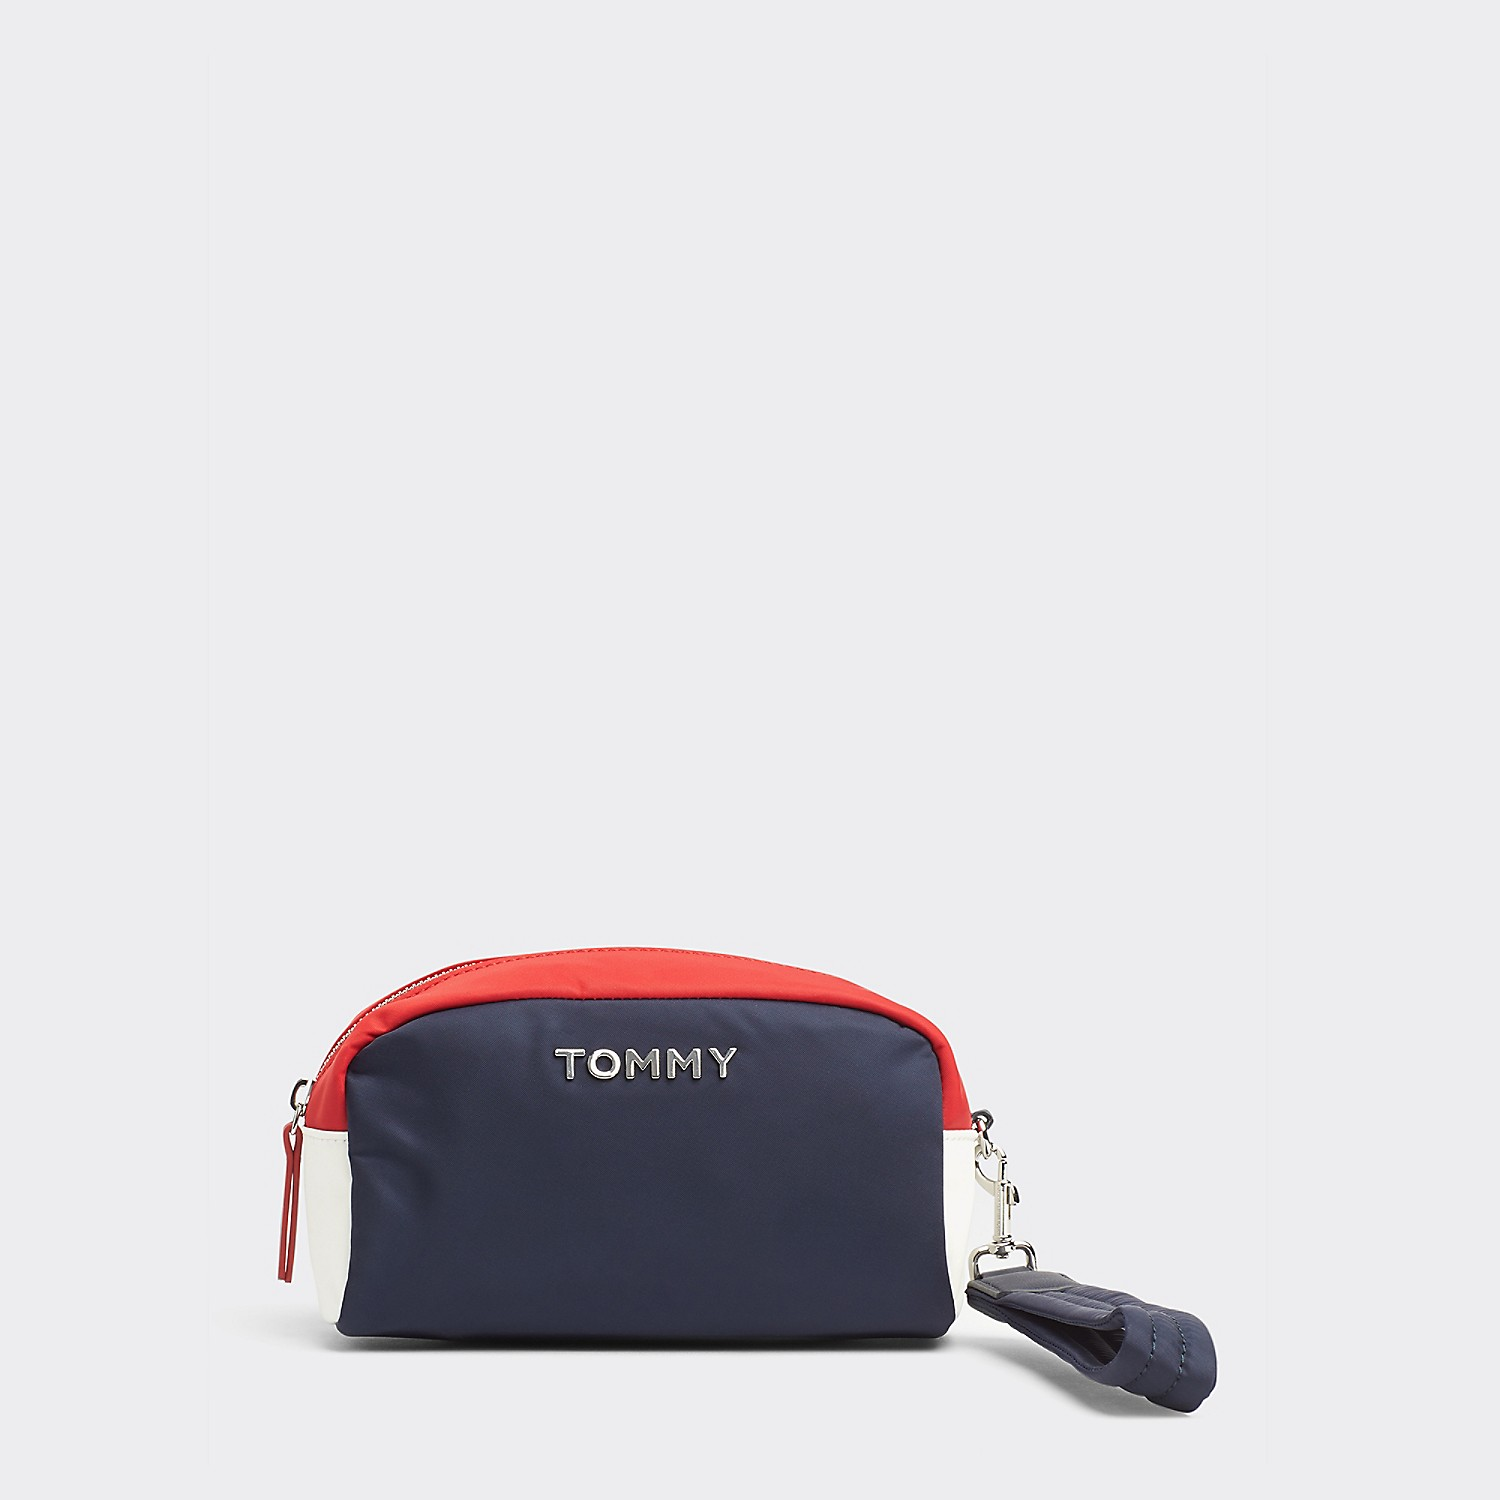 Tommy hilfiger Tommy Nylon Toiletry Bag